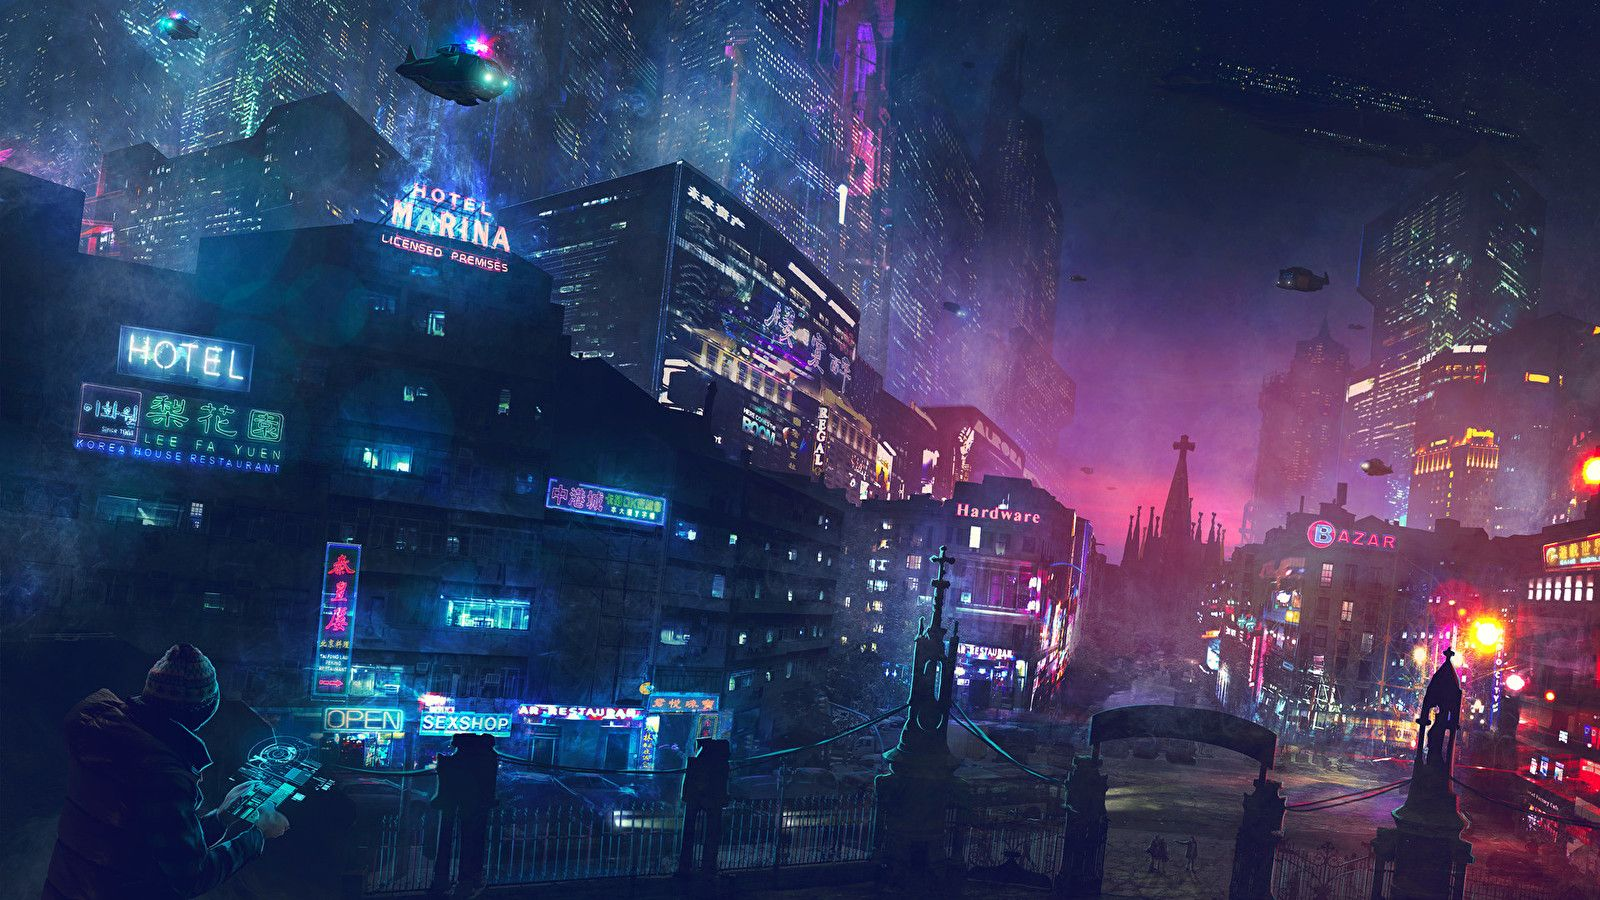 Cyberpunk Wallpapers Reddit 10 Cyberpunk City Futuristic City